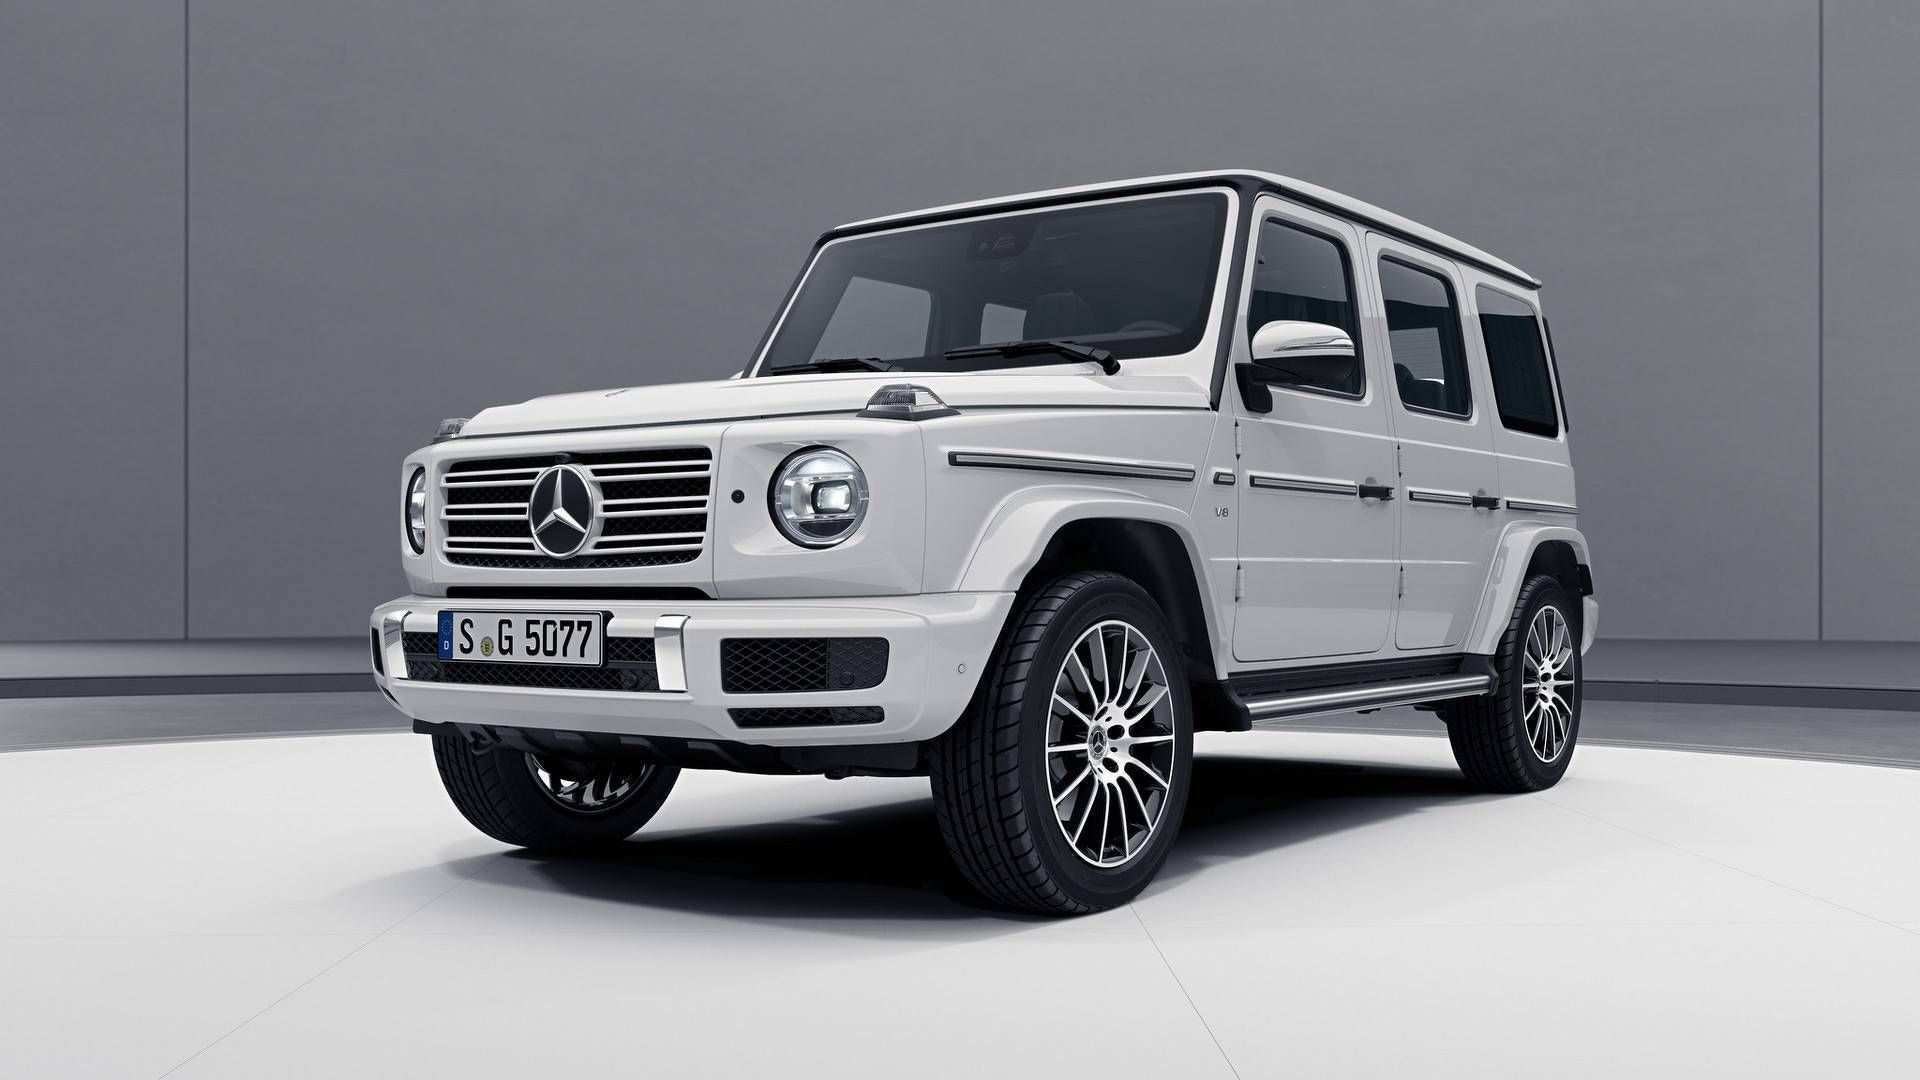 80 New 2020 Mercedes G Wagon Exterior Concept for 2020 Mercedes G Wagon Exterior